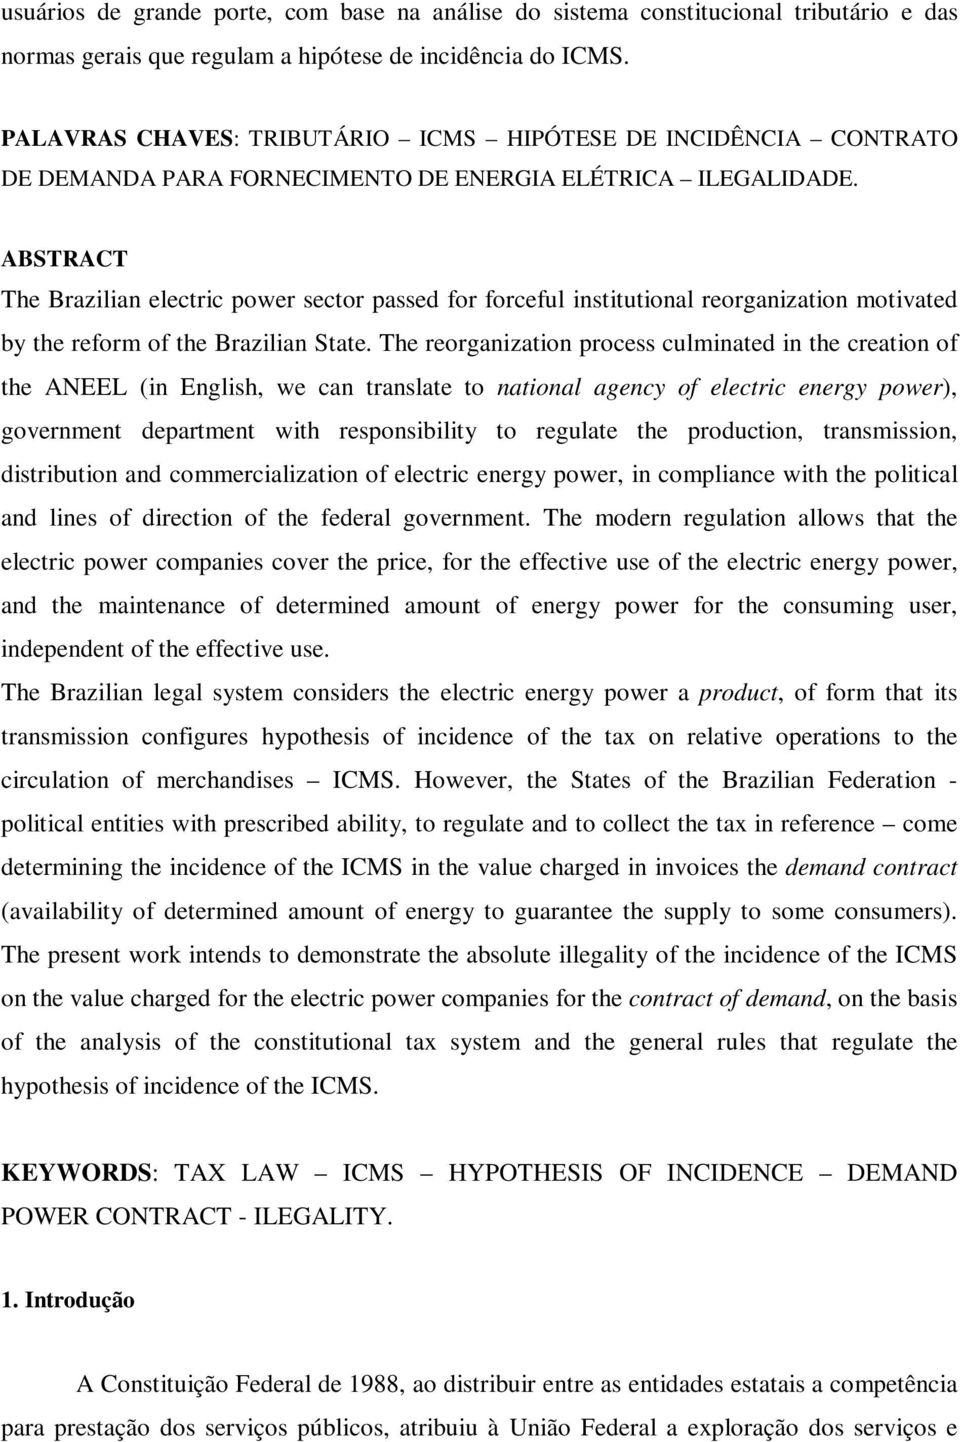 ABSTRACT The Brazilian electric power sector passed for forceful institutional reorganization motivated by the reform of the Brazilian State.